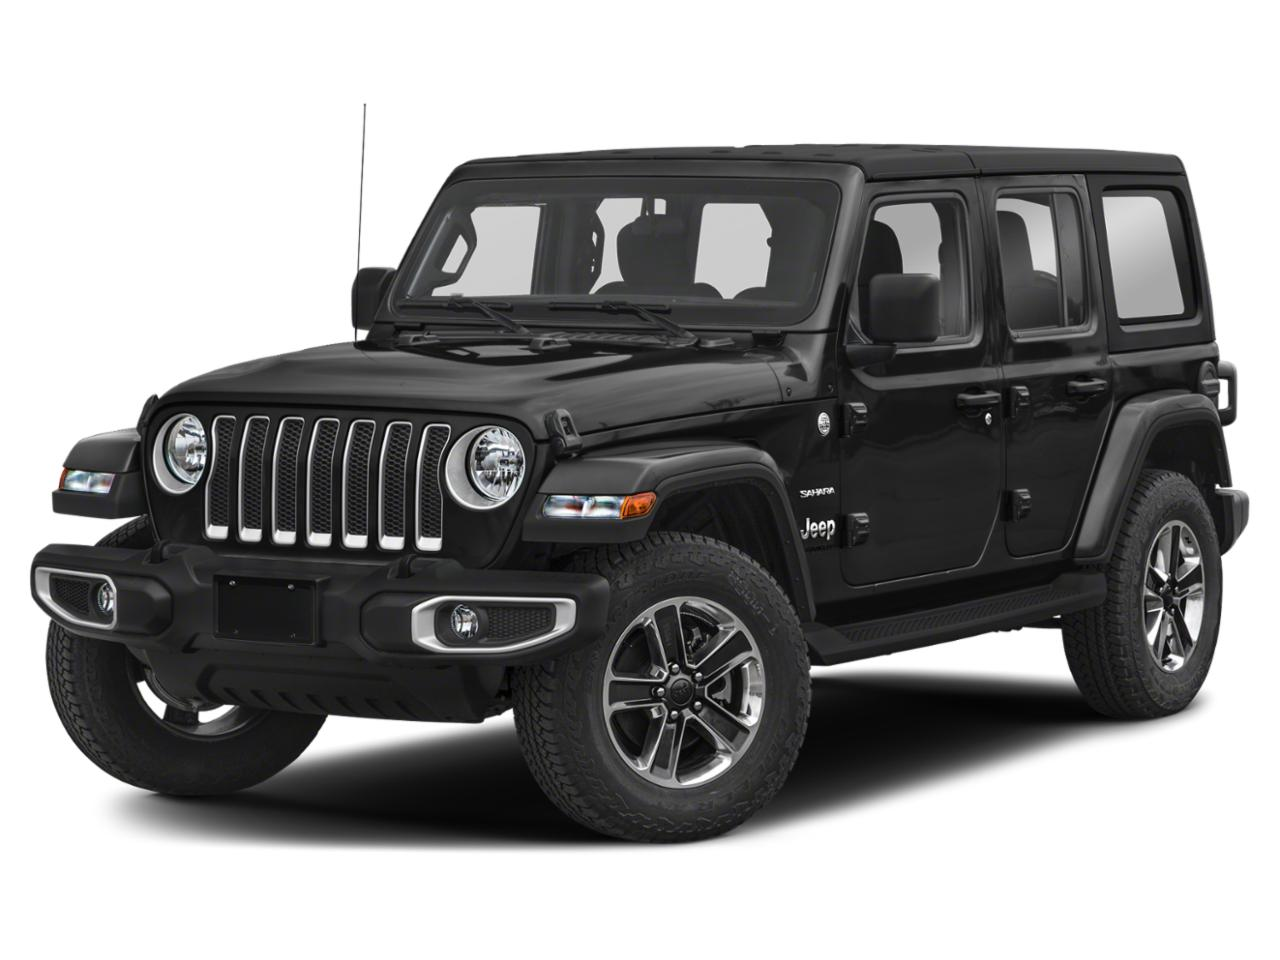 2019 Jeep Wrangler Unlimited Vehicle Photo in Clarksville, MD 21029